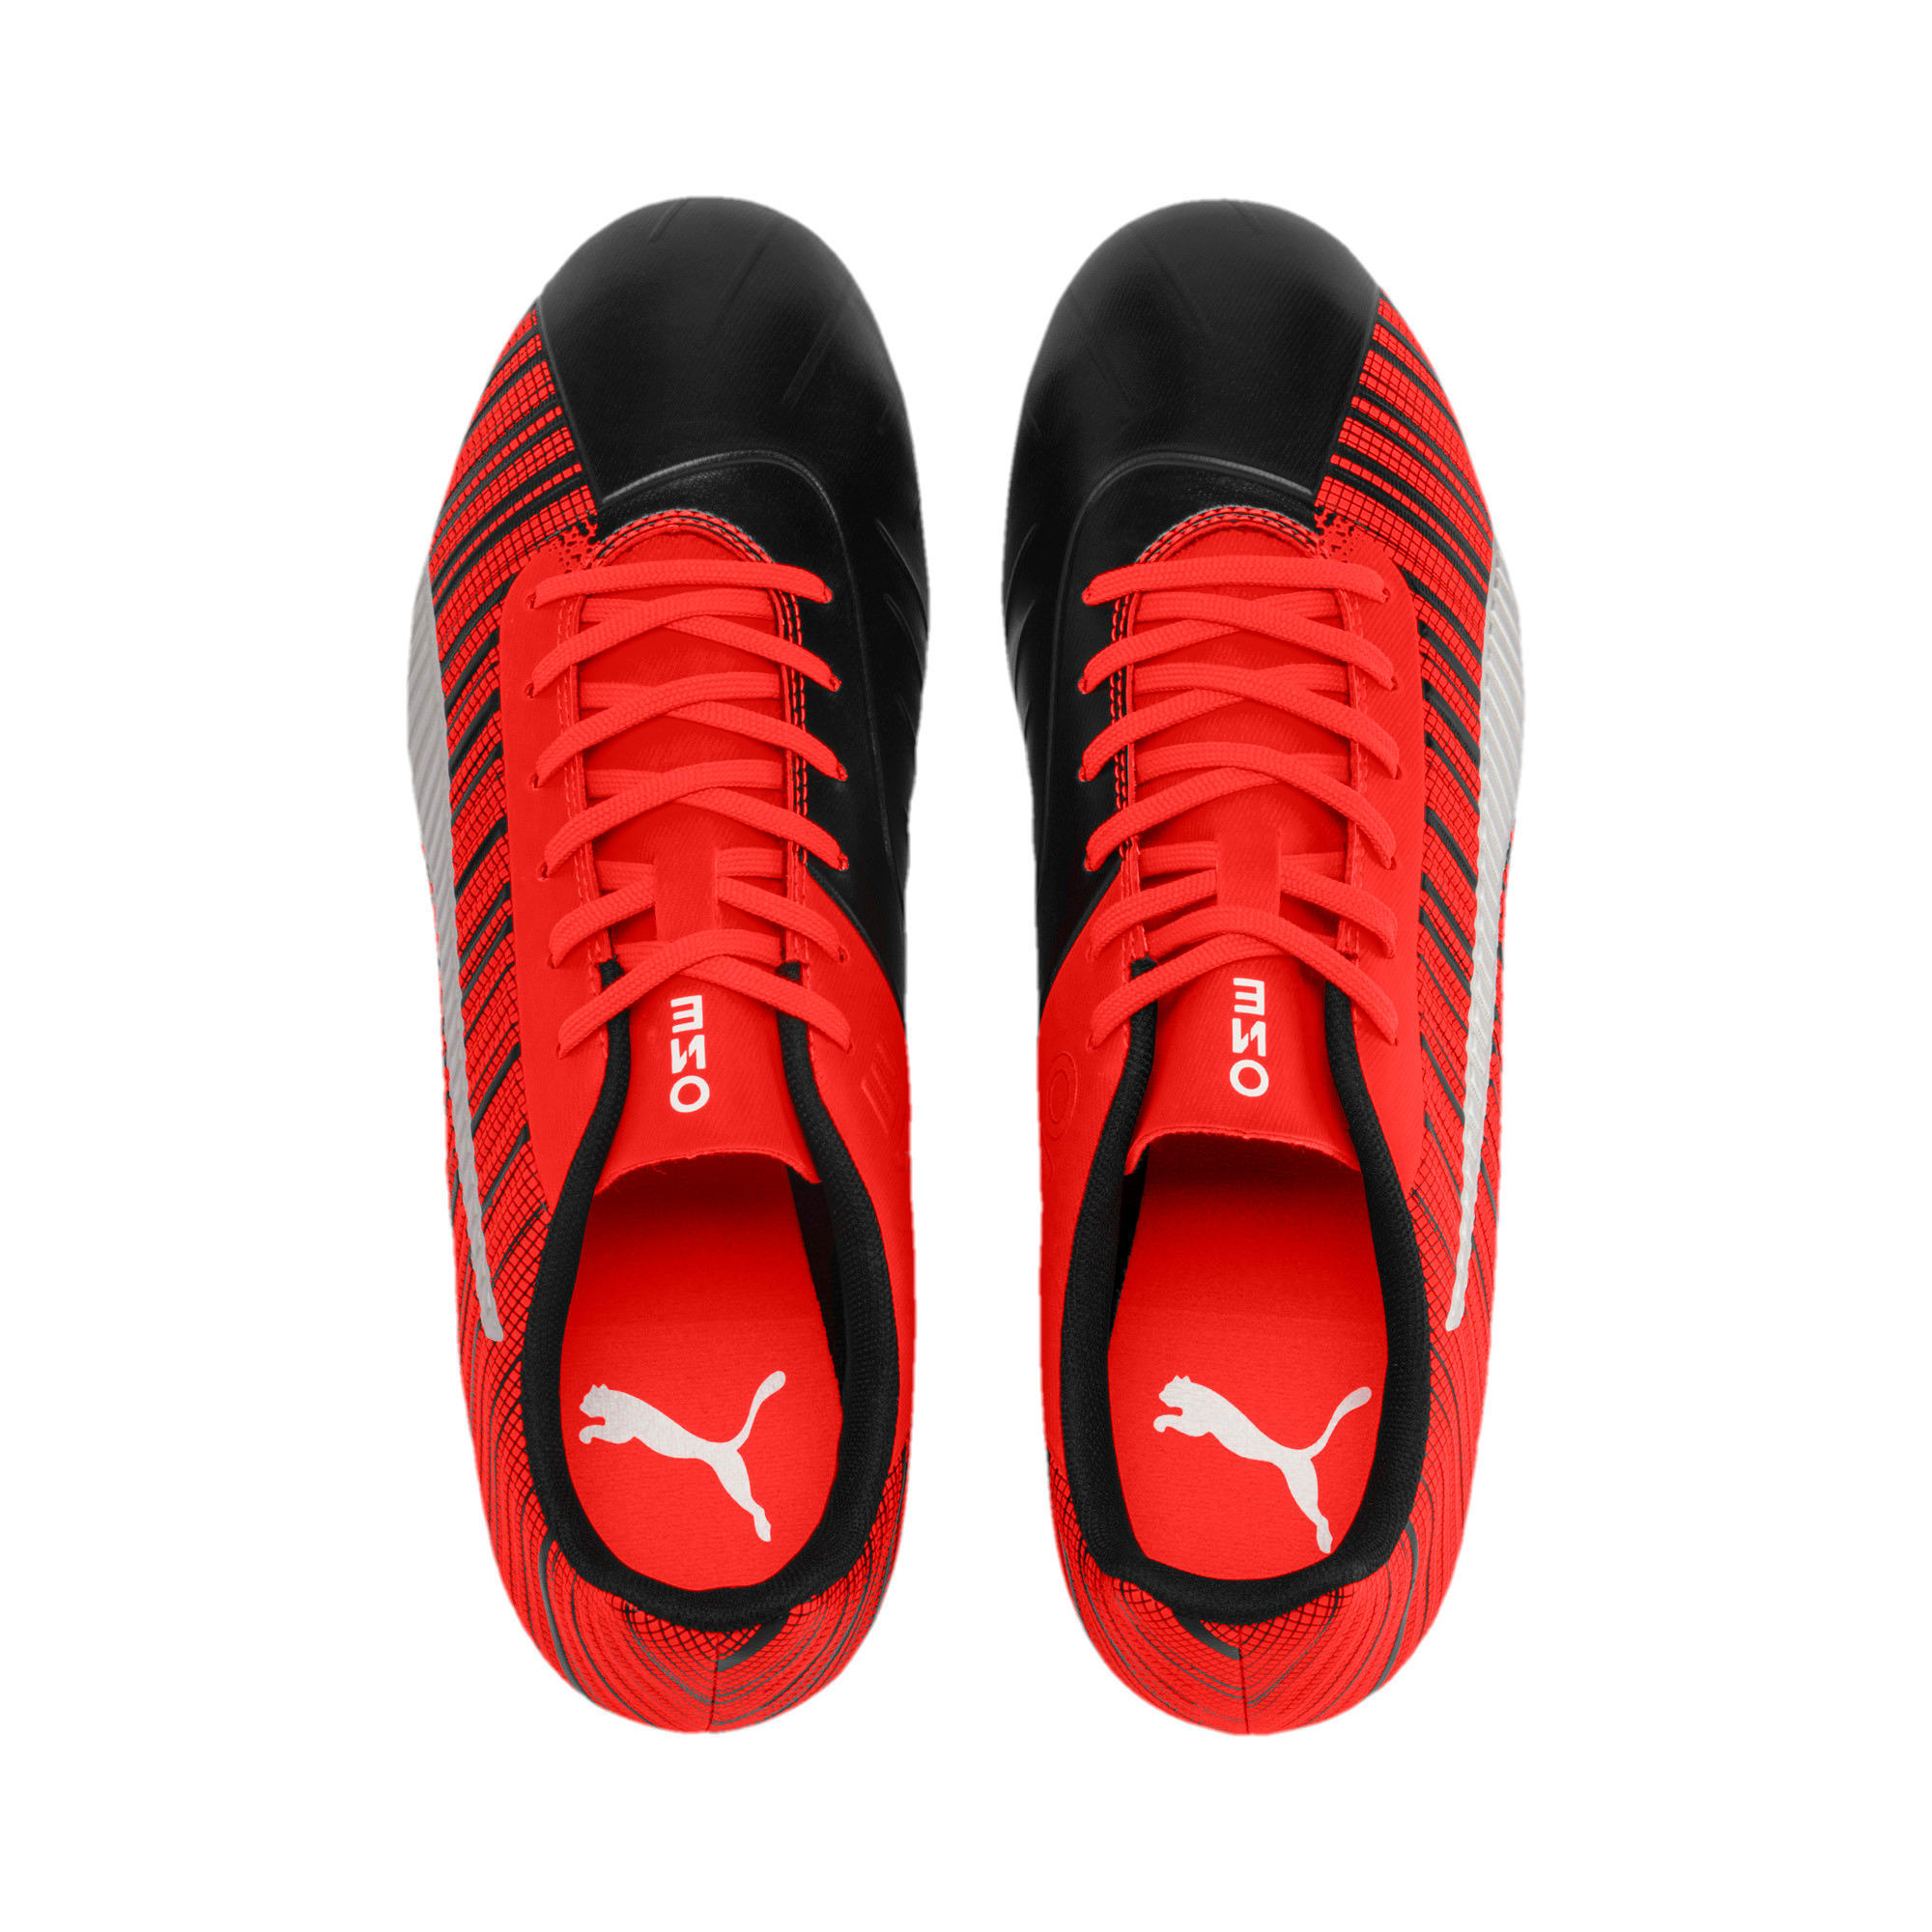 Thumbnail 7 of PUMA ONE 5.4 Men's FG/AG Football Boots, Black-Nrgy Red-Aged Silver, medium